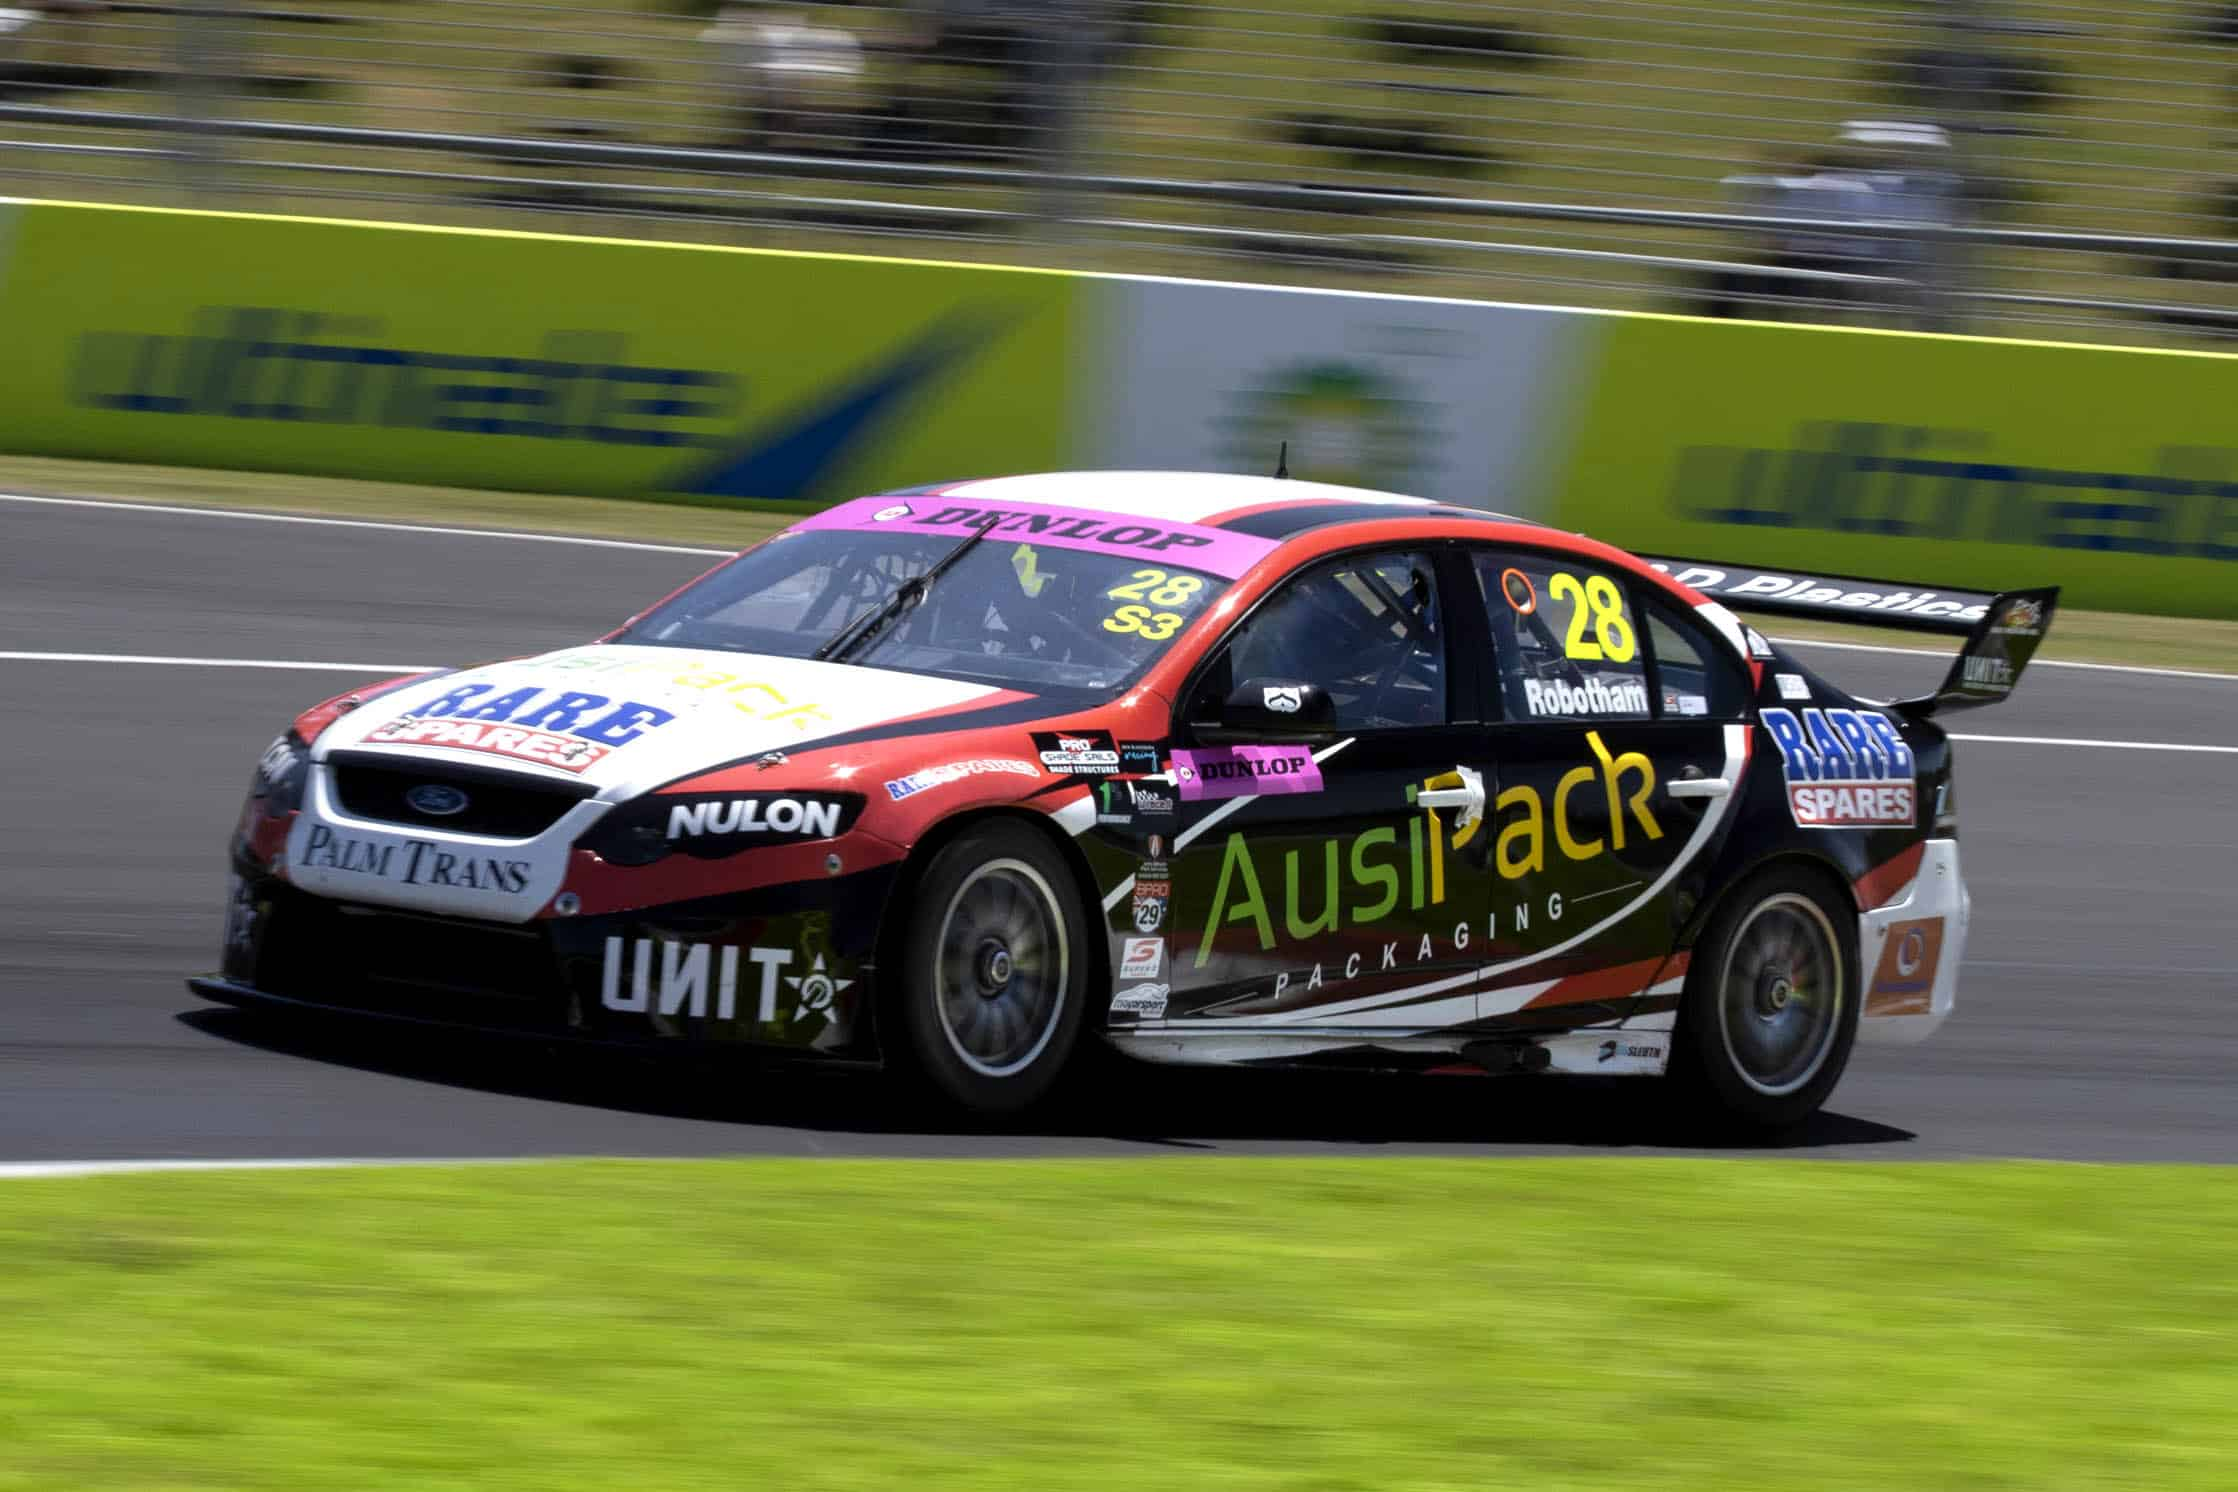 Robotham keeps his streak alive with another win at Bathurst